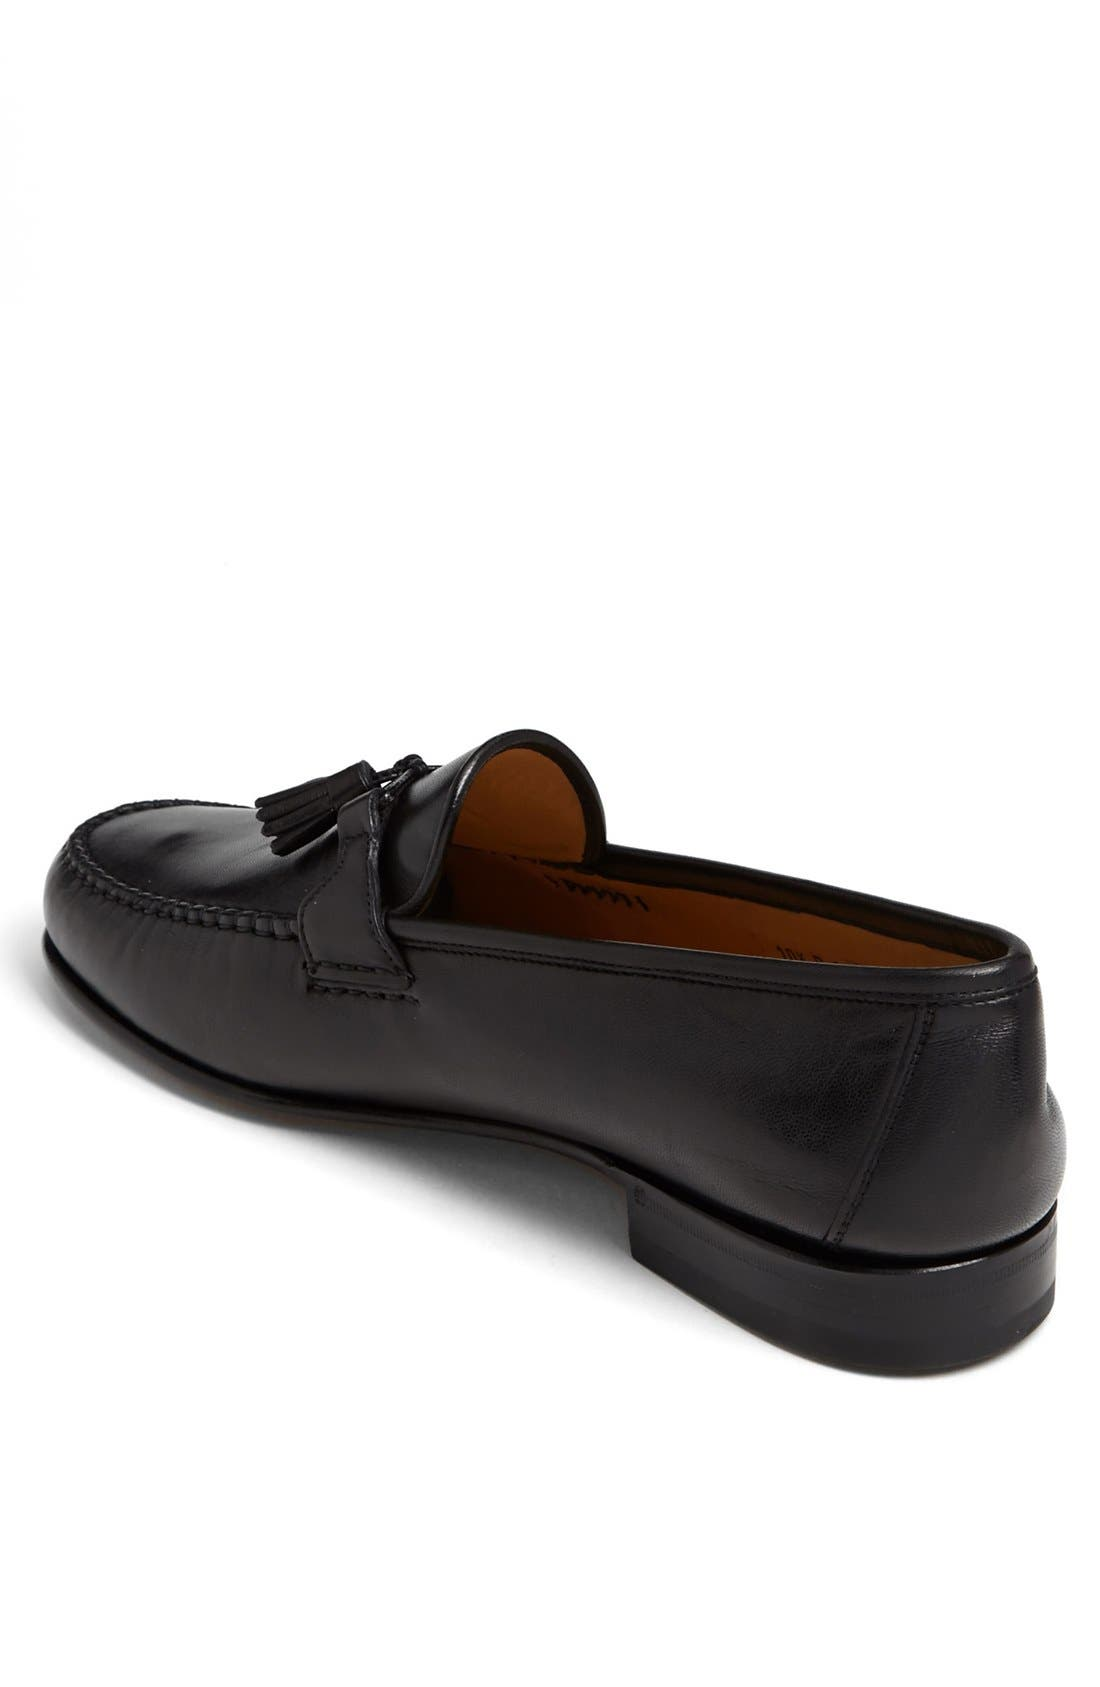 'Urbino' Tassel Loafer,                             Alternate thumbnail 2, color,                             Black